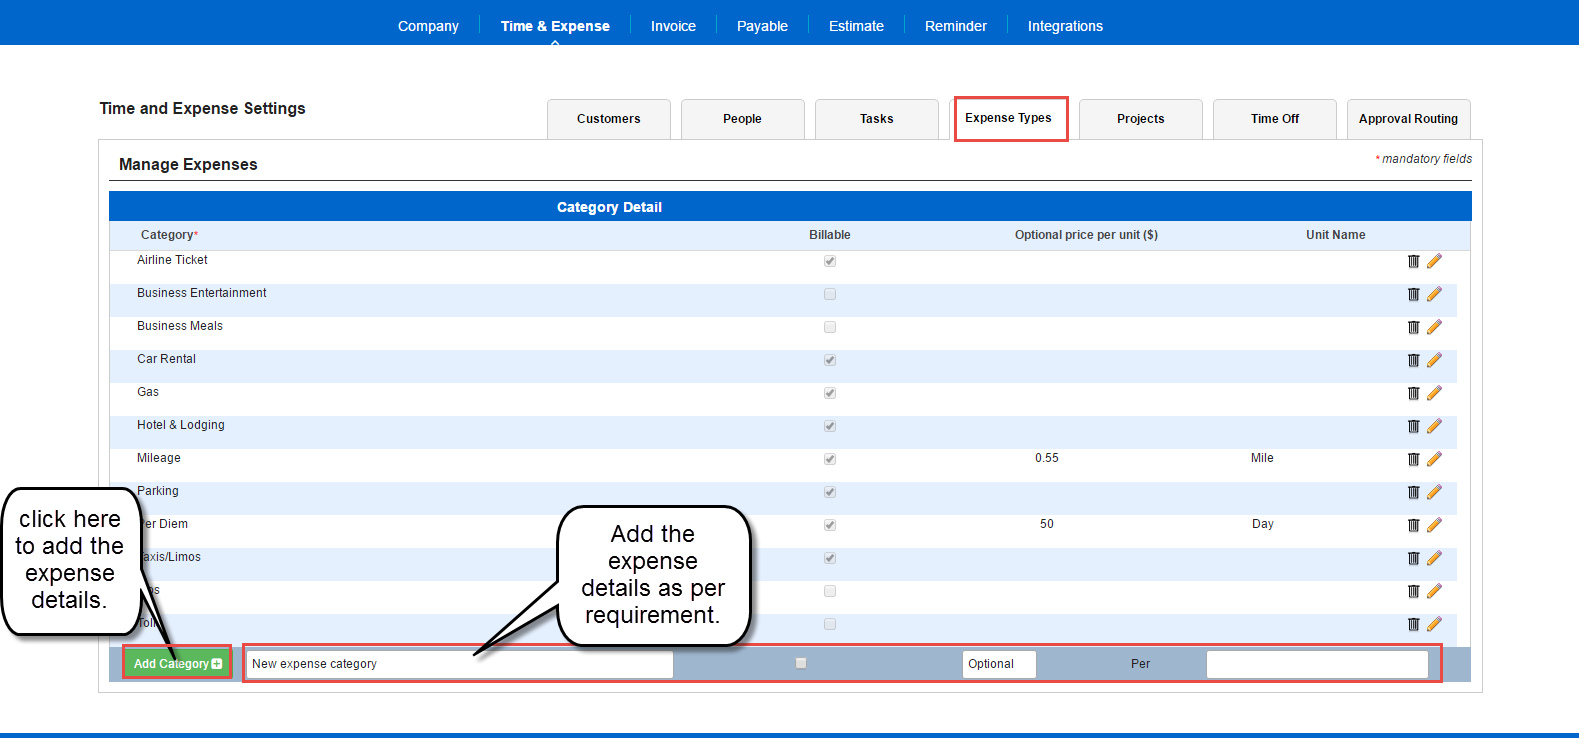 Expense types setup in AccountSight